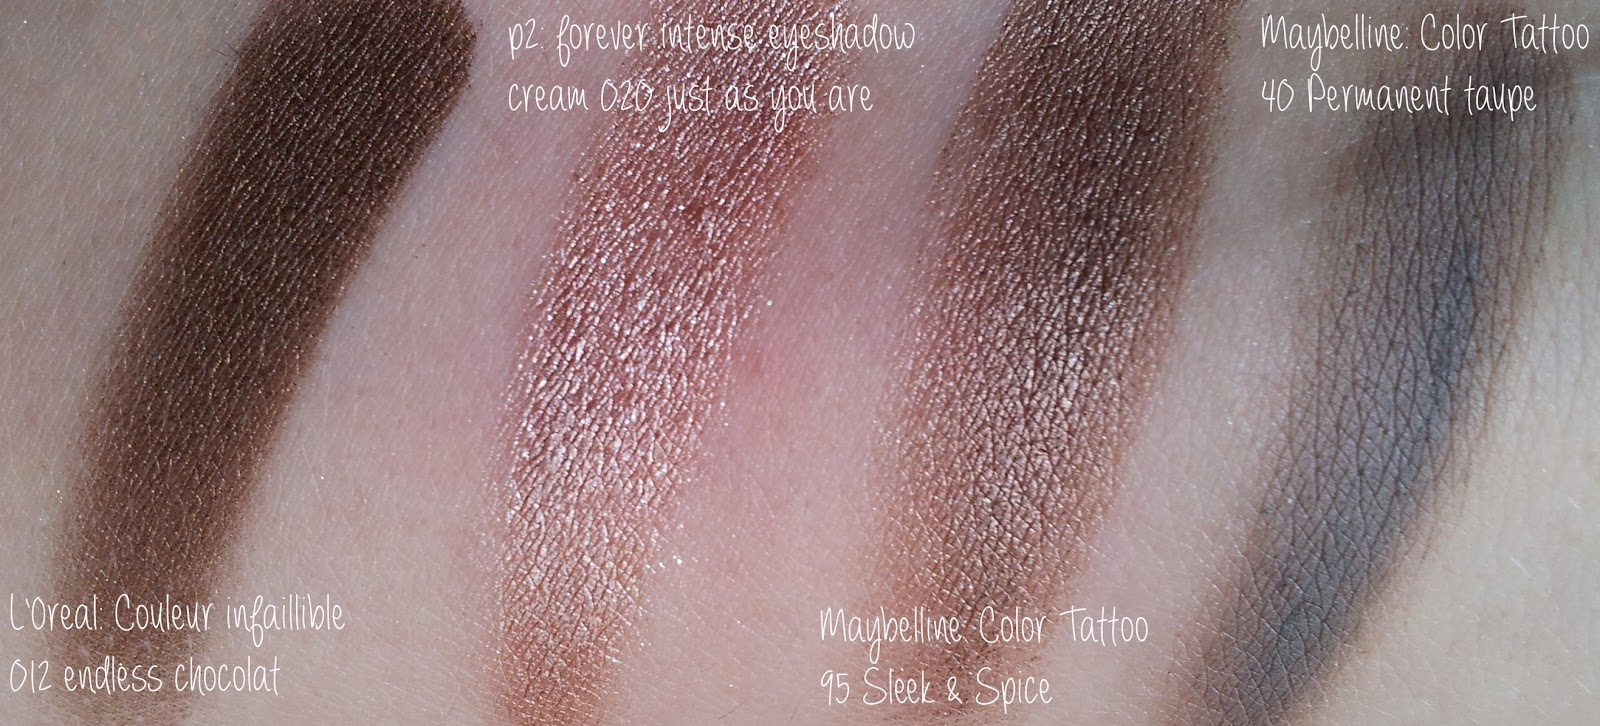 Swatches Maybelline Color Tattoo 95 Sleek&Spice Dupes